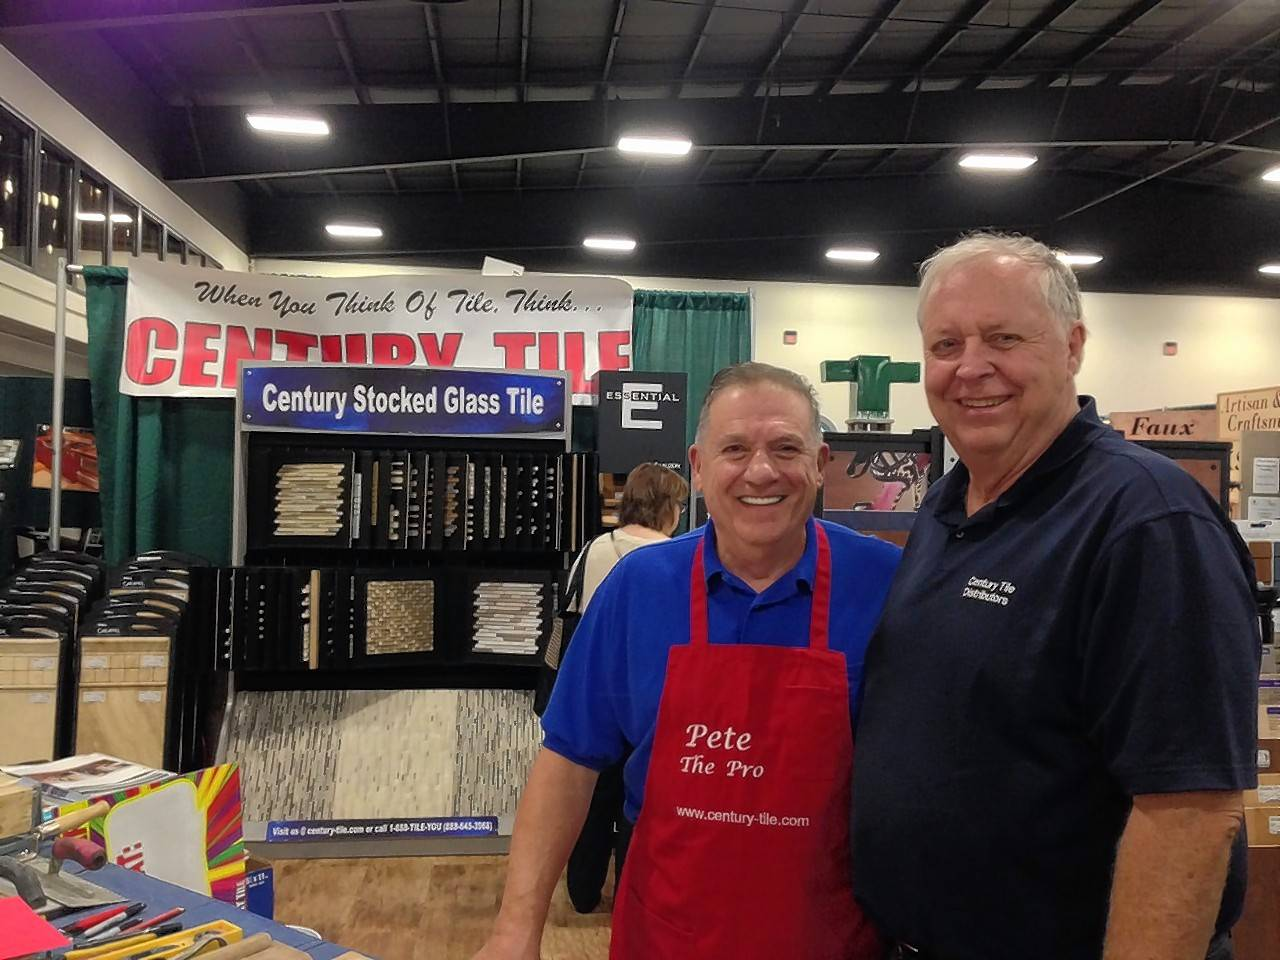 Pete the Pro and Mark Carlson of Century Tile will conduct hands-on, do-it-yourself demonstrations on tiling in their booth at the Old House New House Home Show in St. Charles.